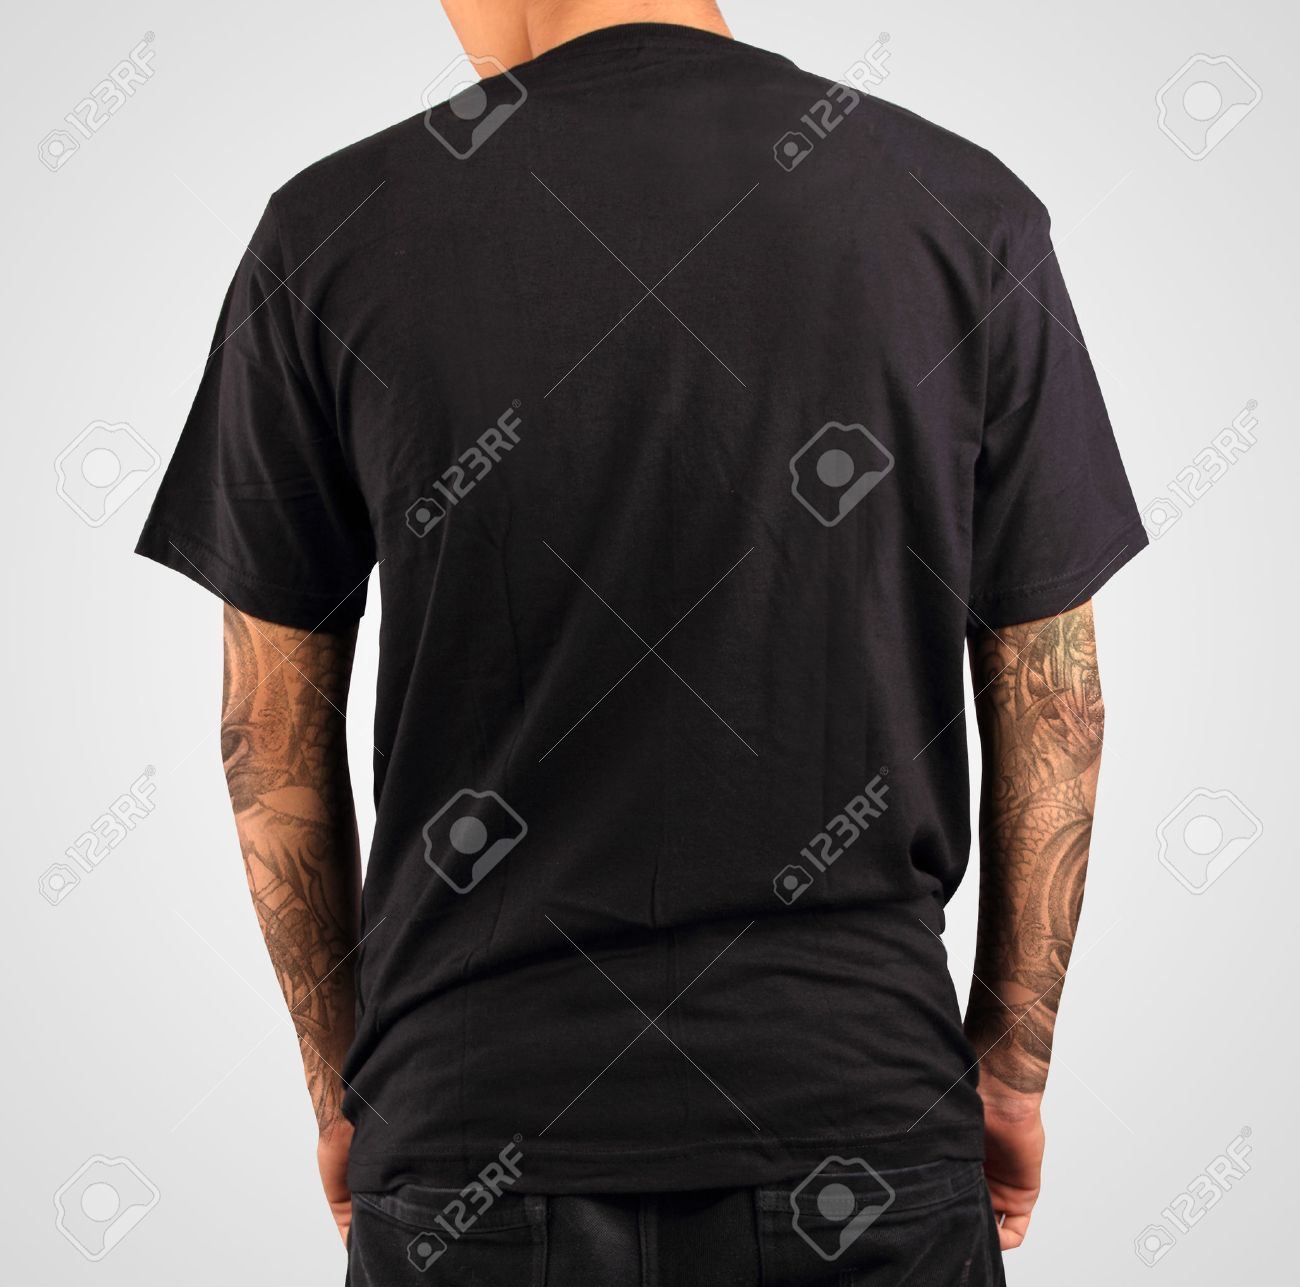 Black t shirt vector template - Black T Shirt Template Stock Photo Picture And Royalty Free Image